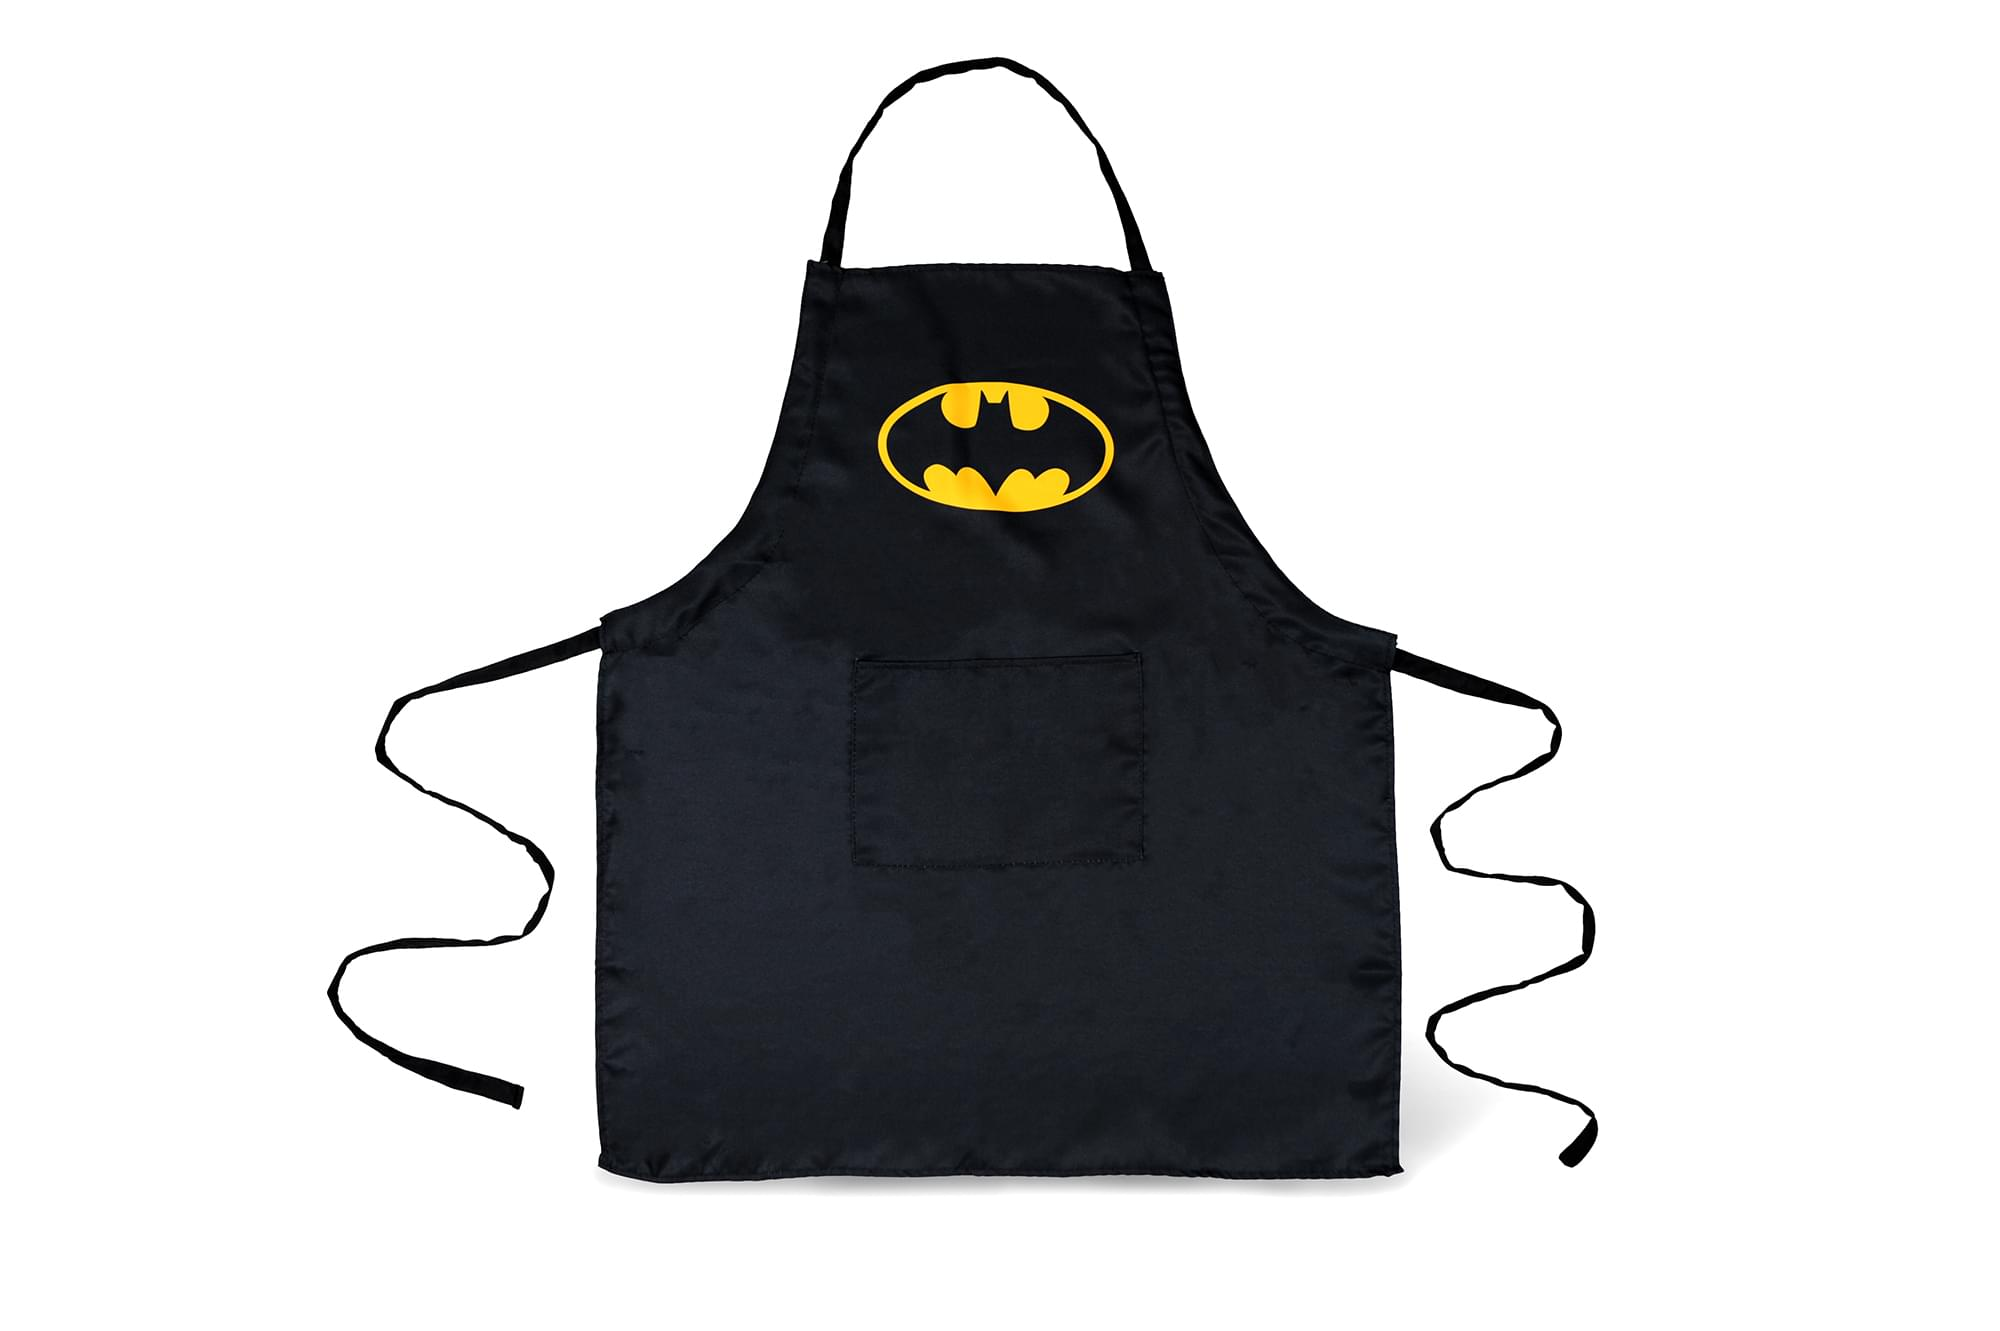 BRAND NEW GREAT GIFT ADULTS OFFICIAL DC BATMAN FABRIC APRON